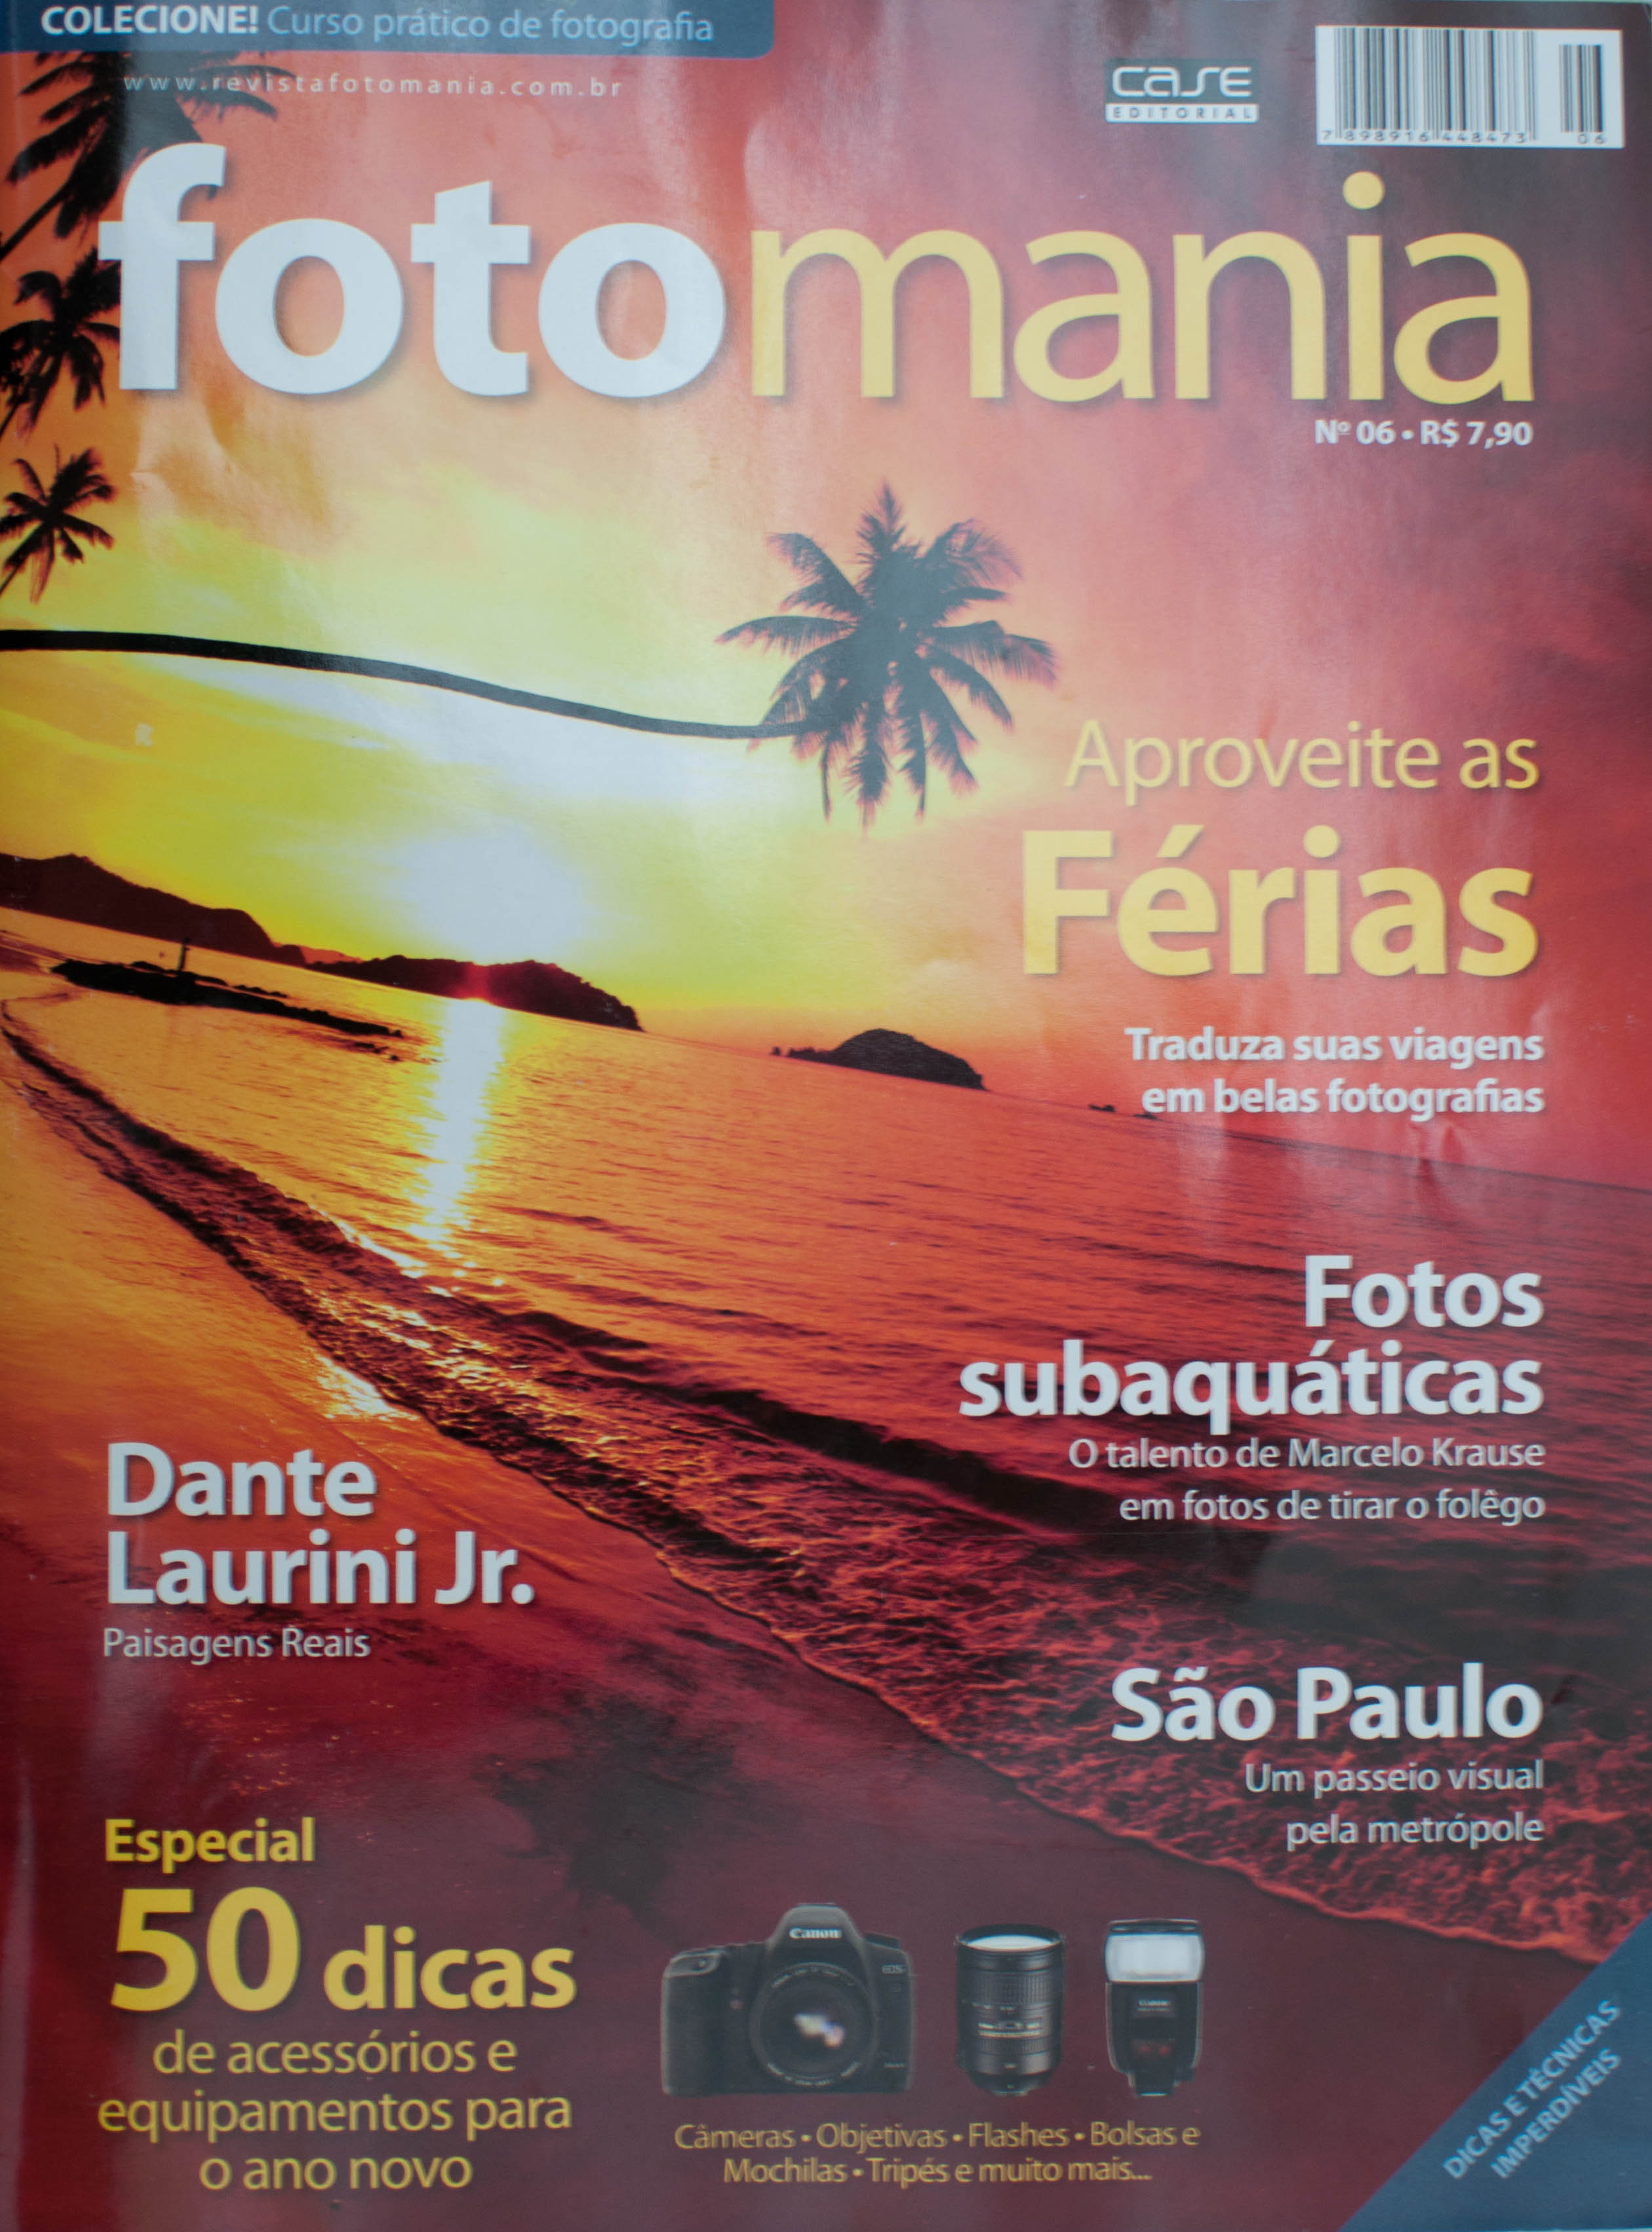 Revista Fotomania (4 of 4).jpg